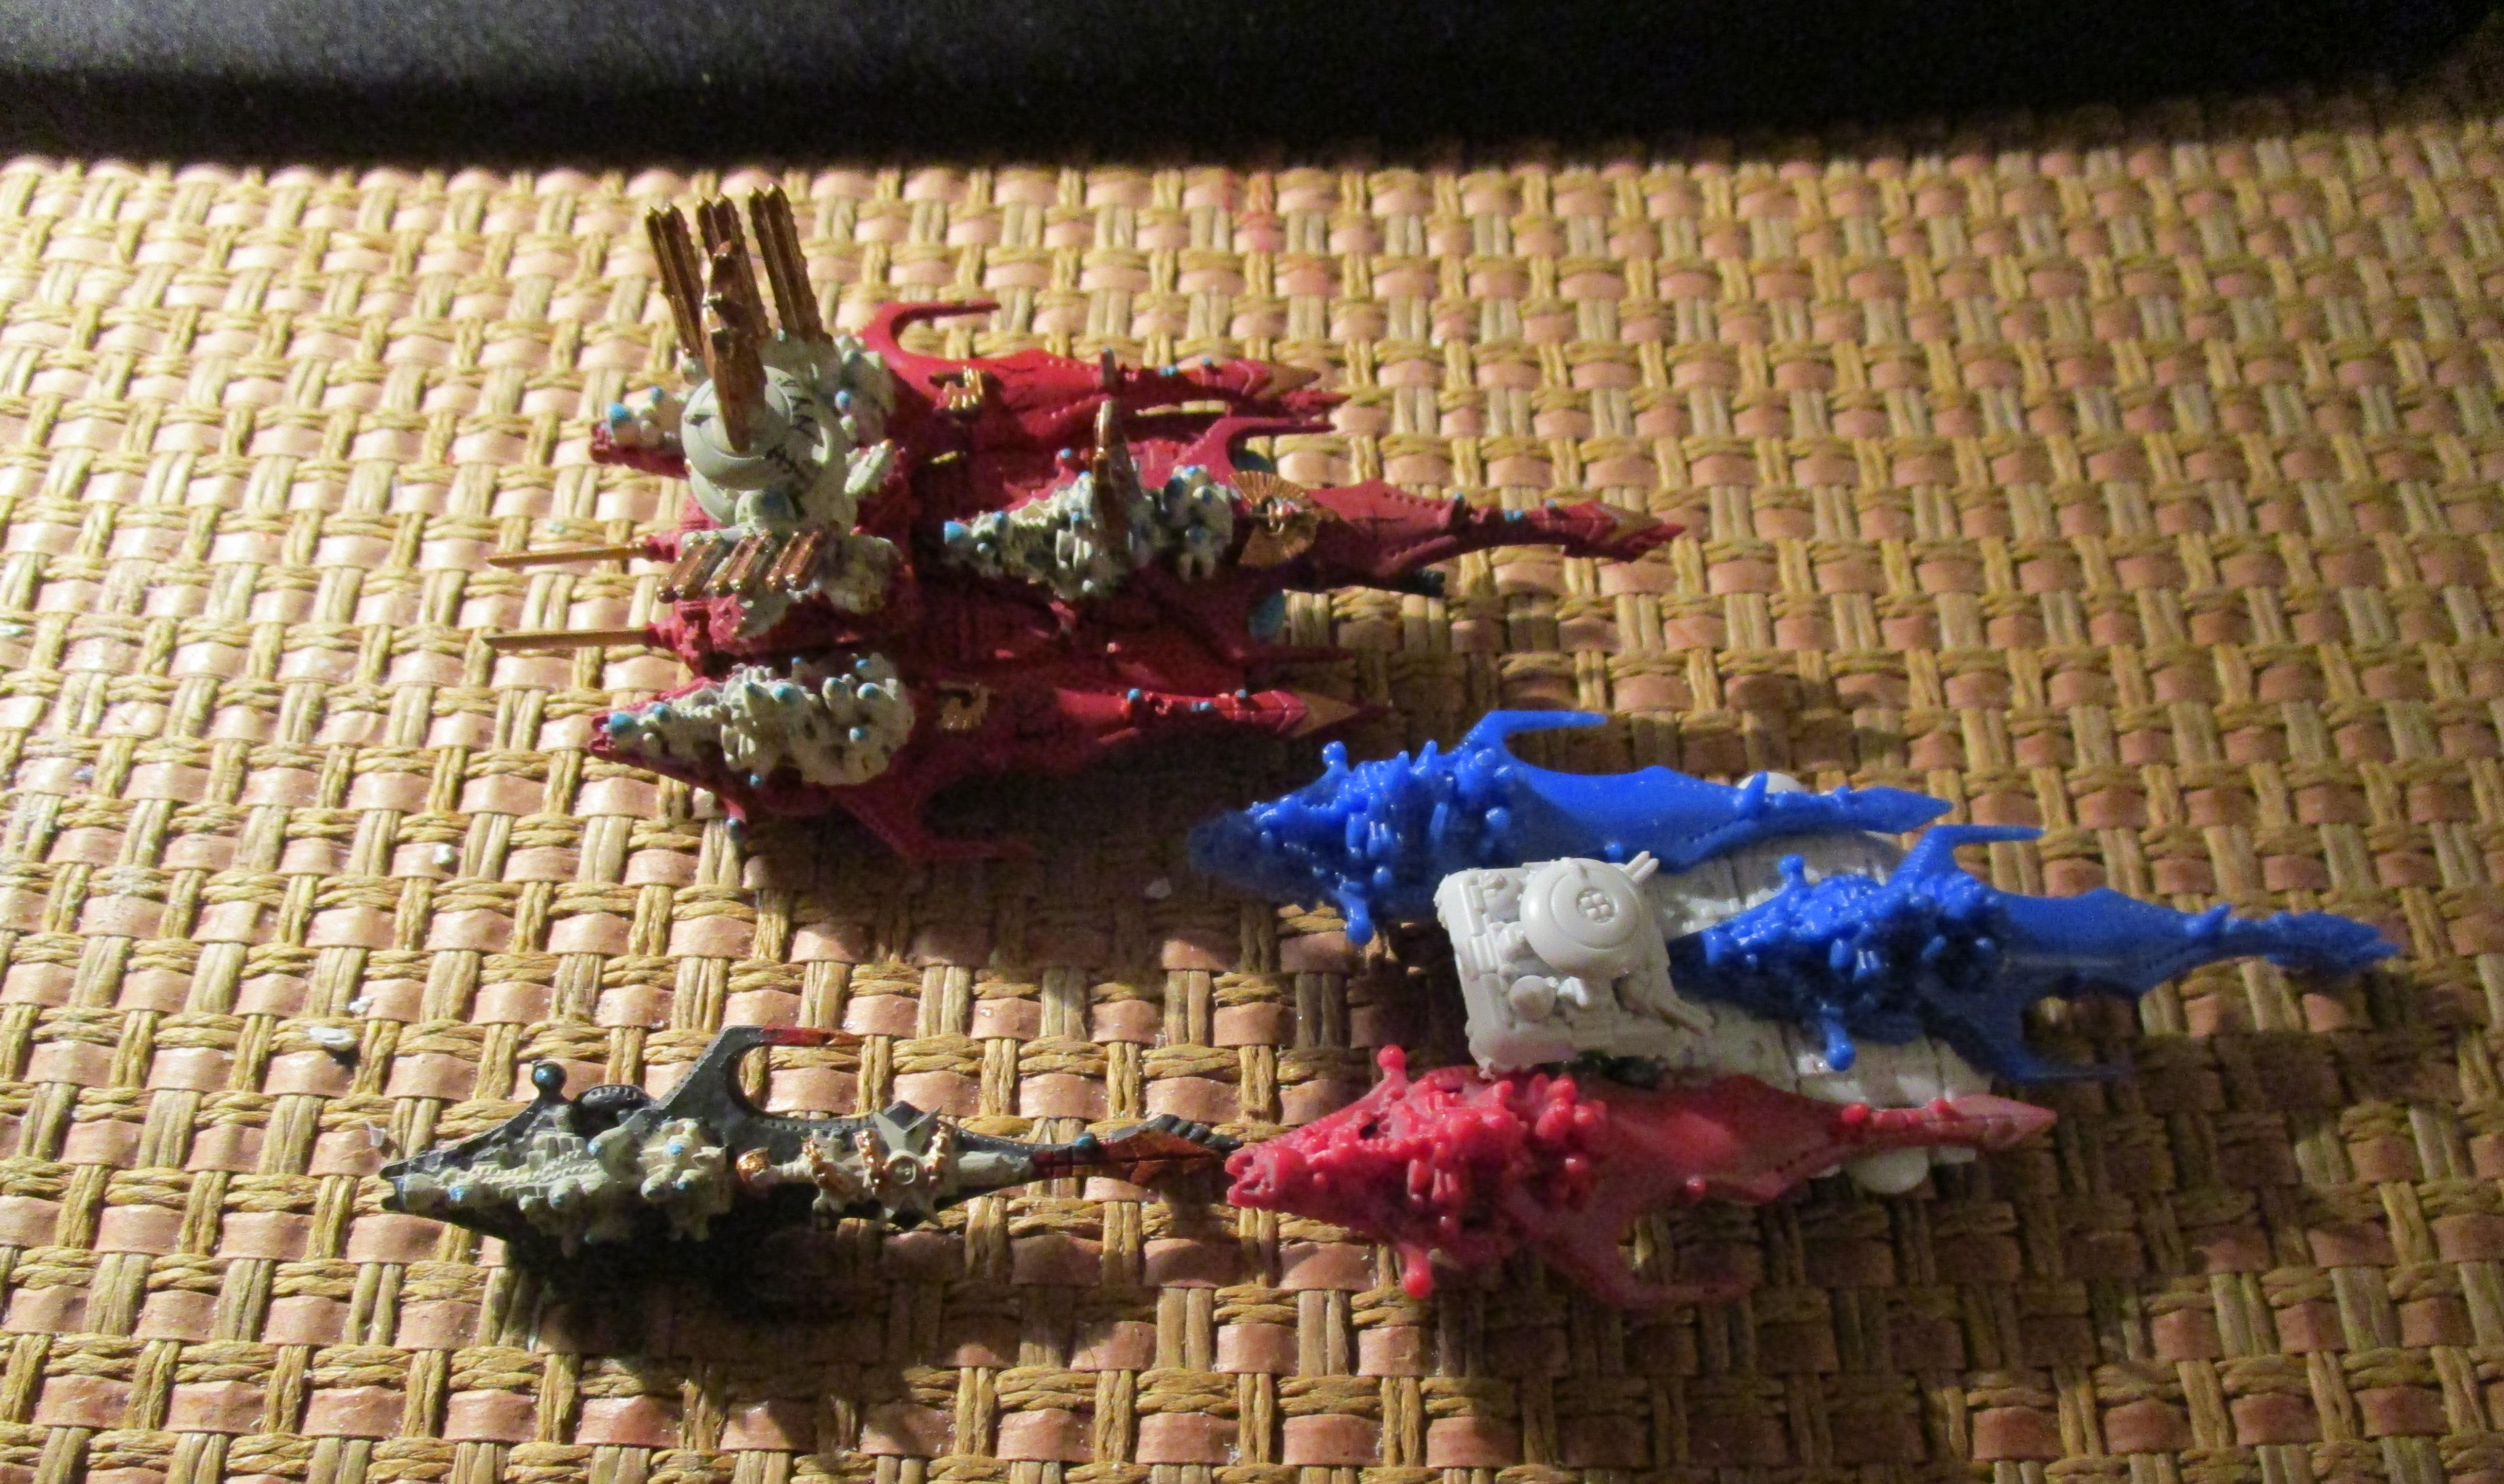 Battlefleet Gothic, Battleship, Space Fleet